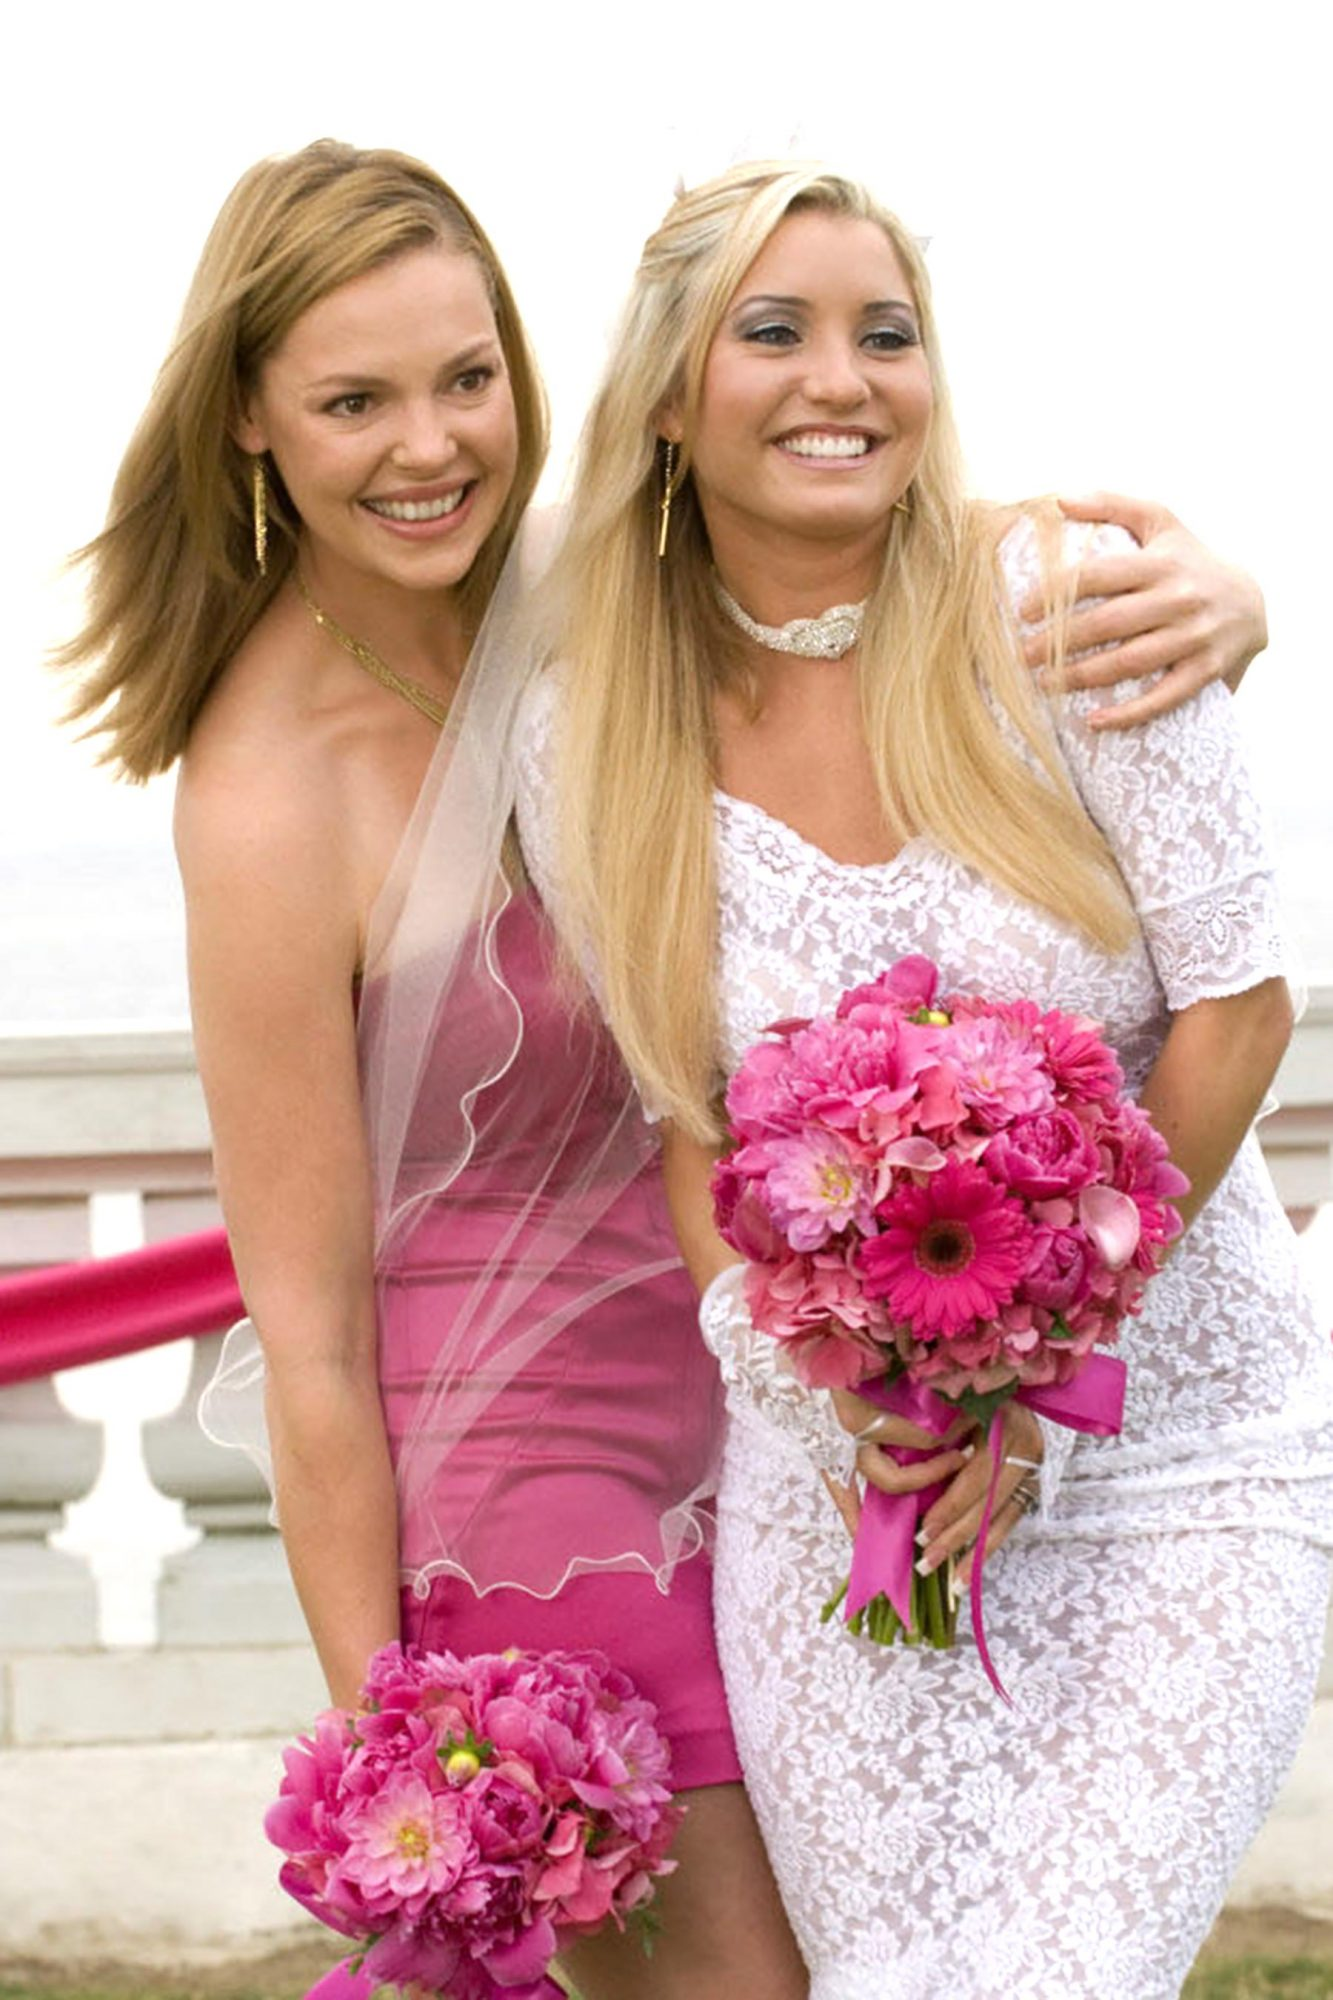 27 DRESSES, Katherine Heigl (left), 2008. TM &©20th Century Fox. All rights reserved/courtesy Everet